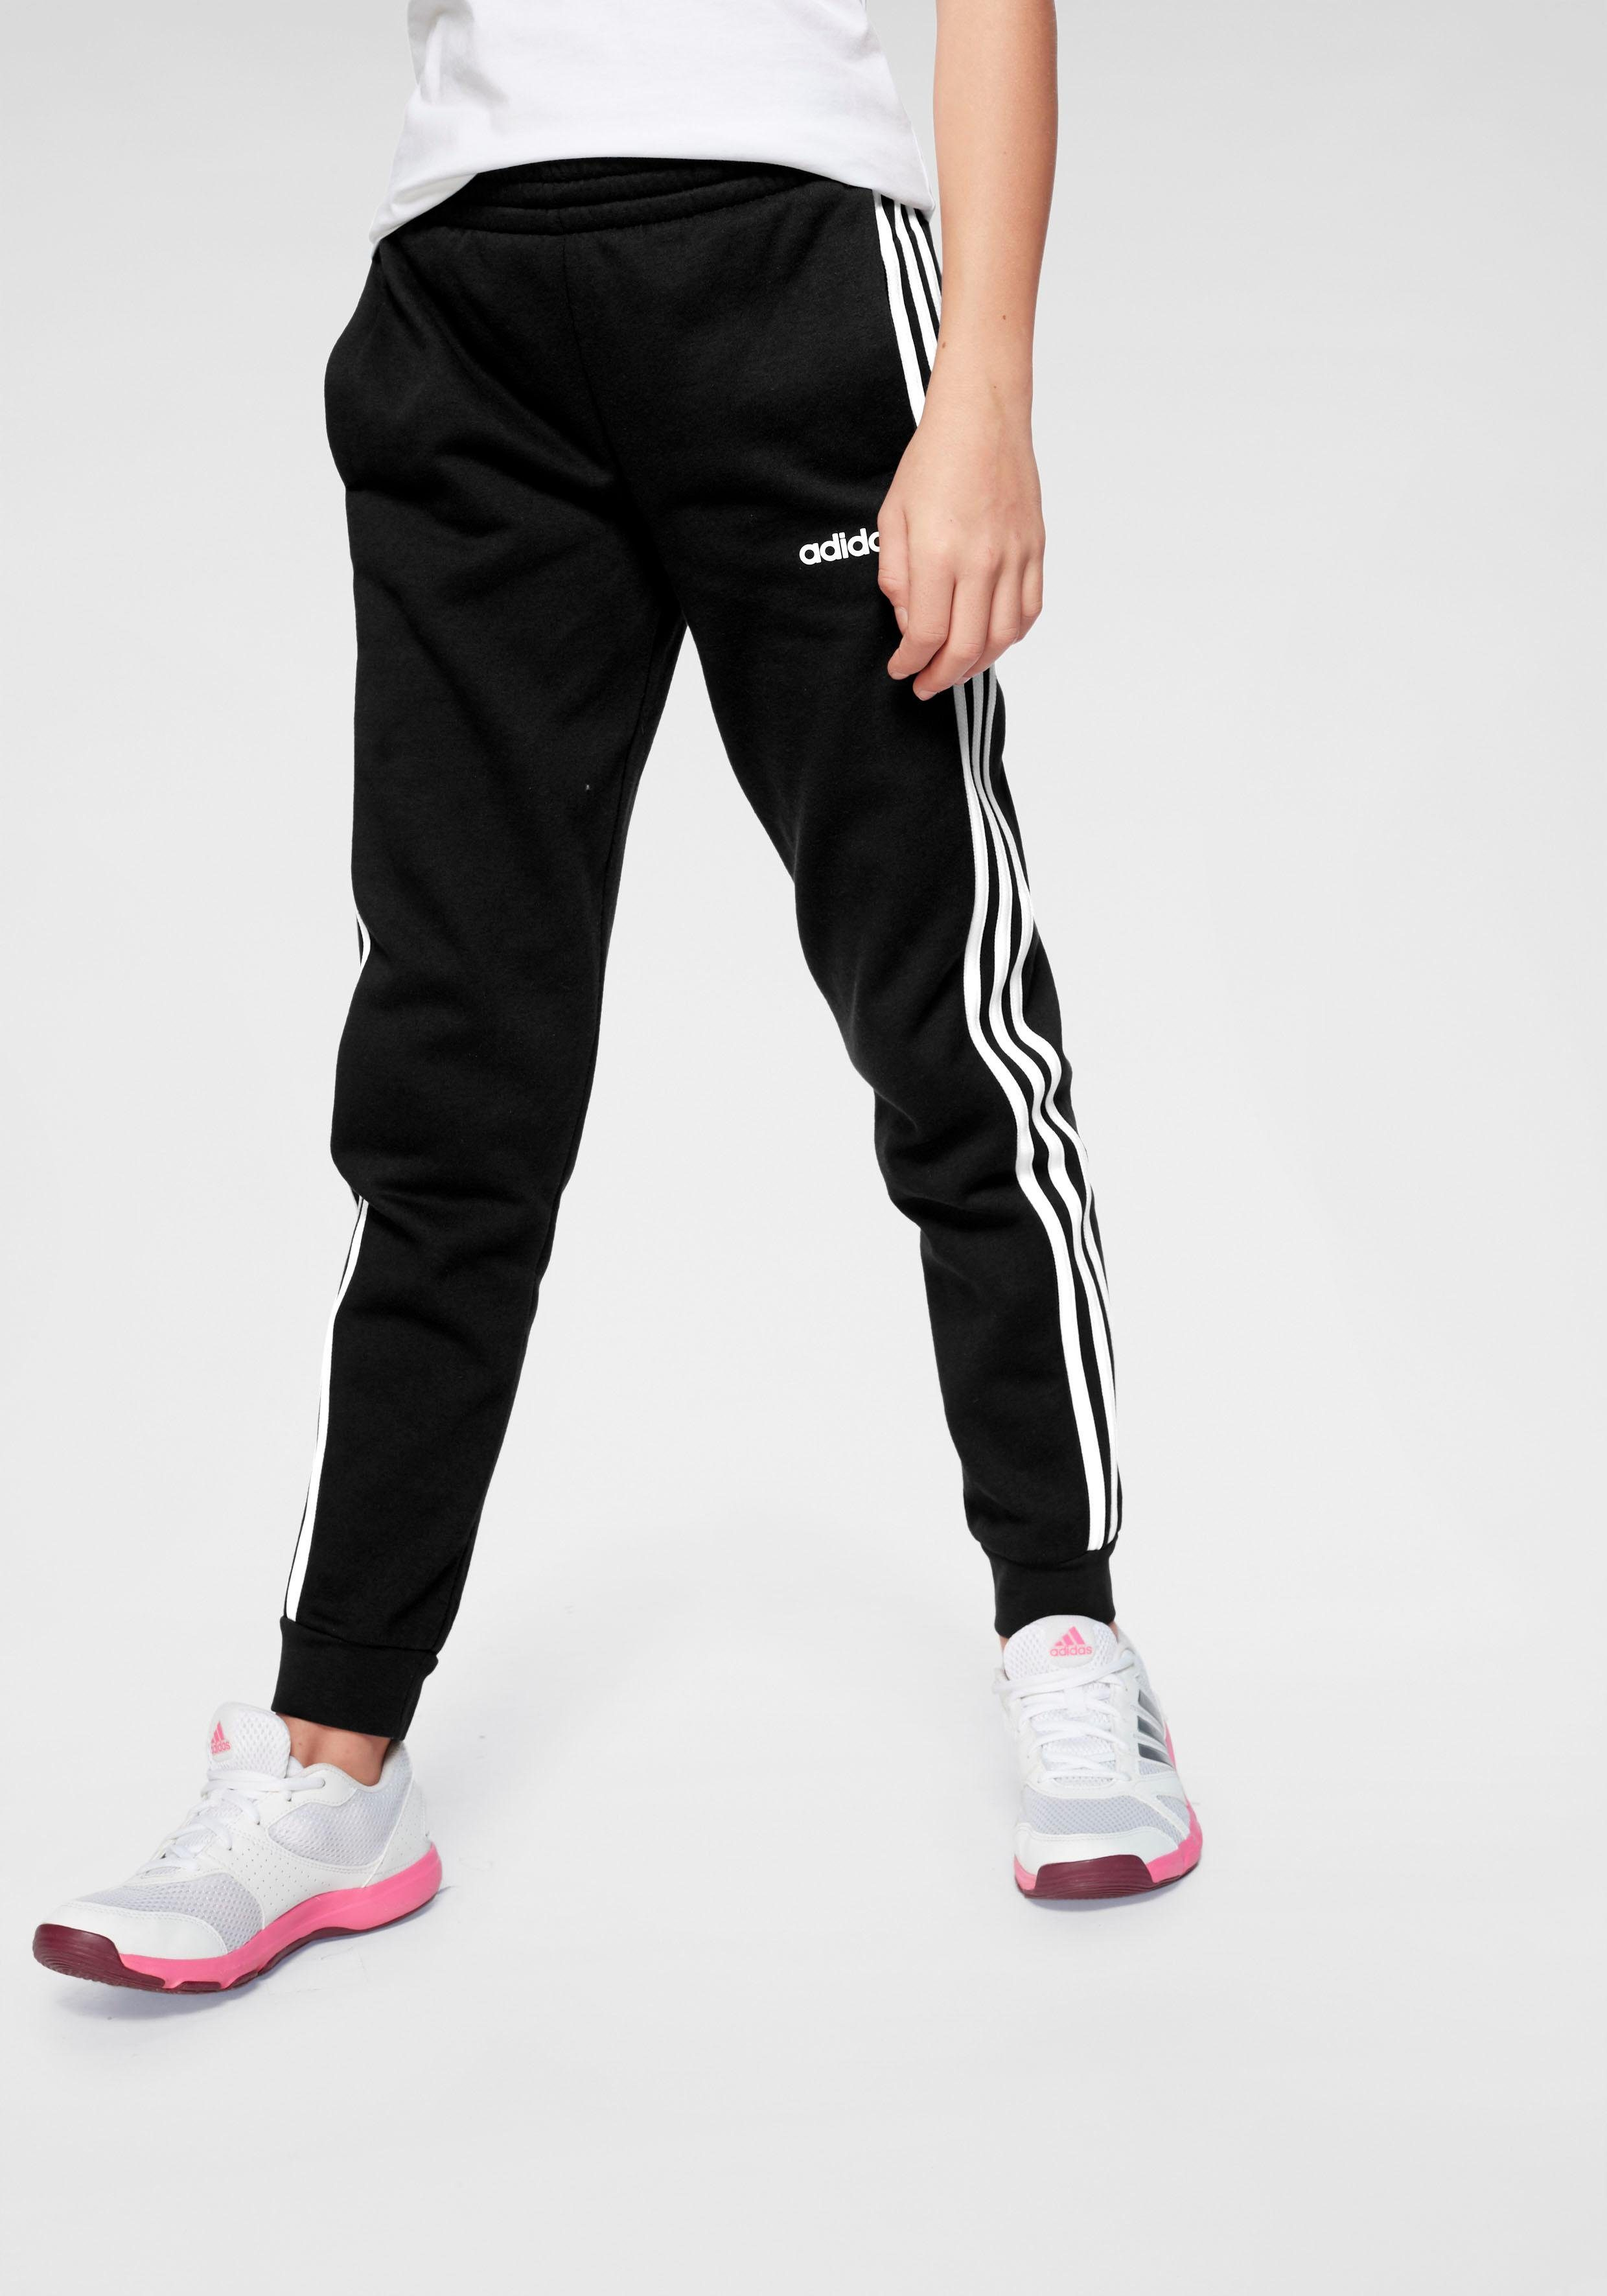 adidas Jogginghose »YOUTH GIRL ESSENTIAL 3 STRIPES PANT« online kaufen | OTTO